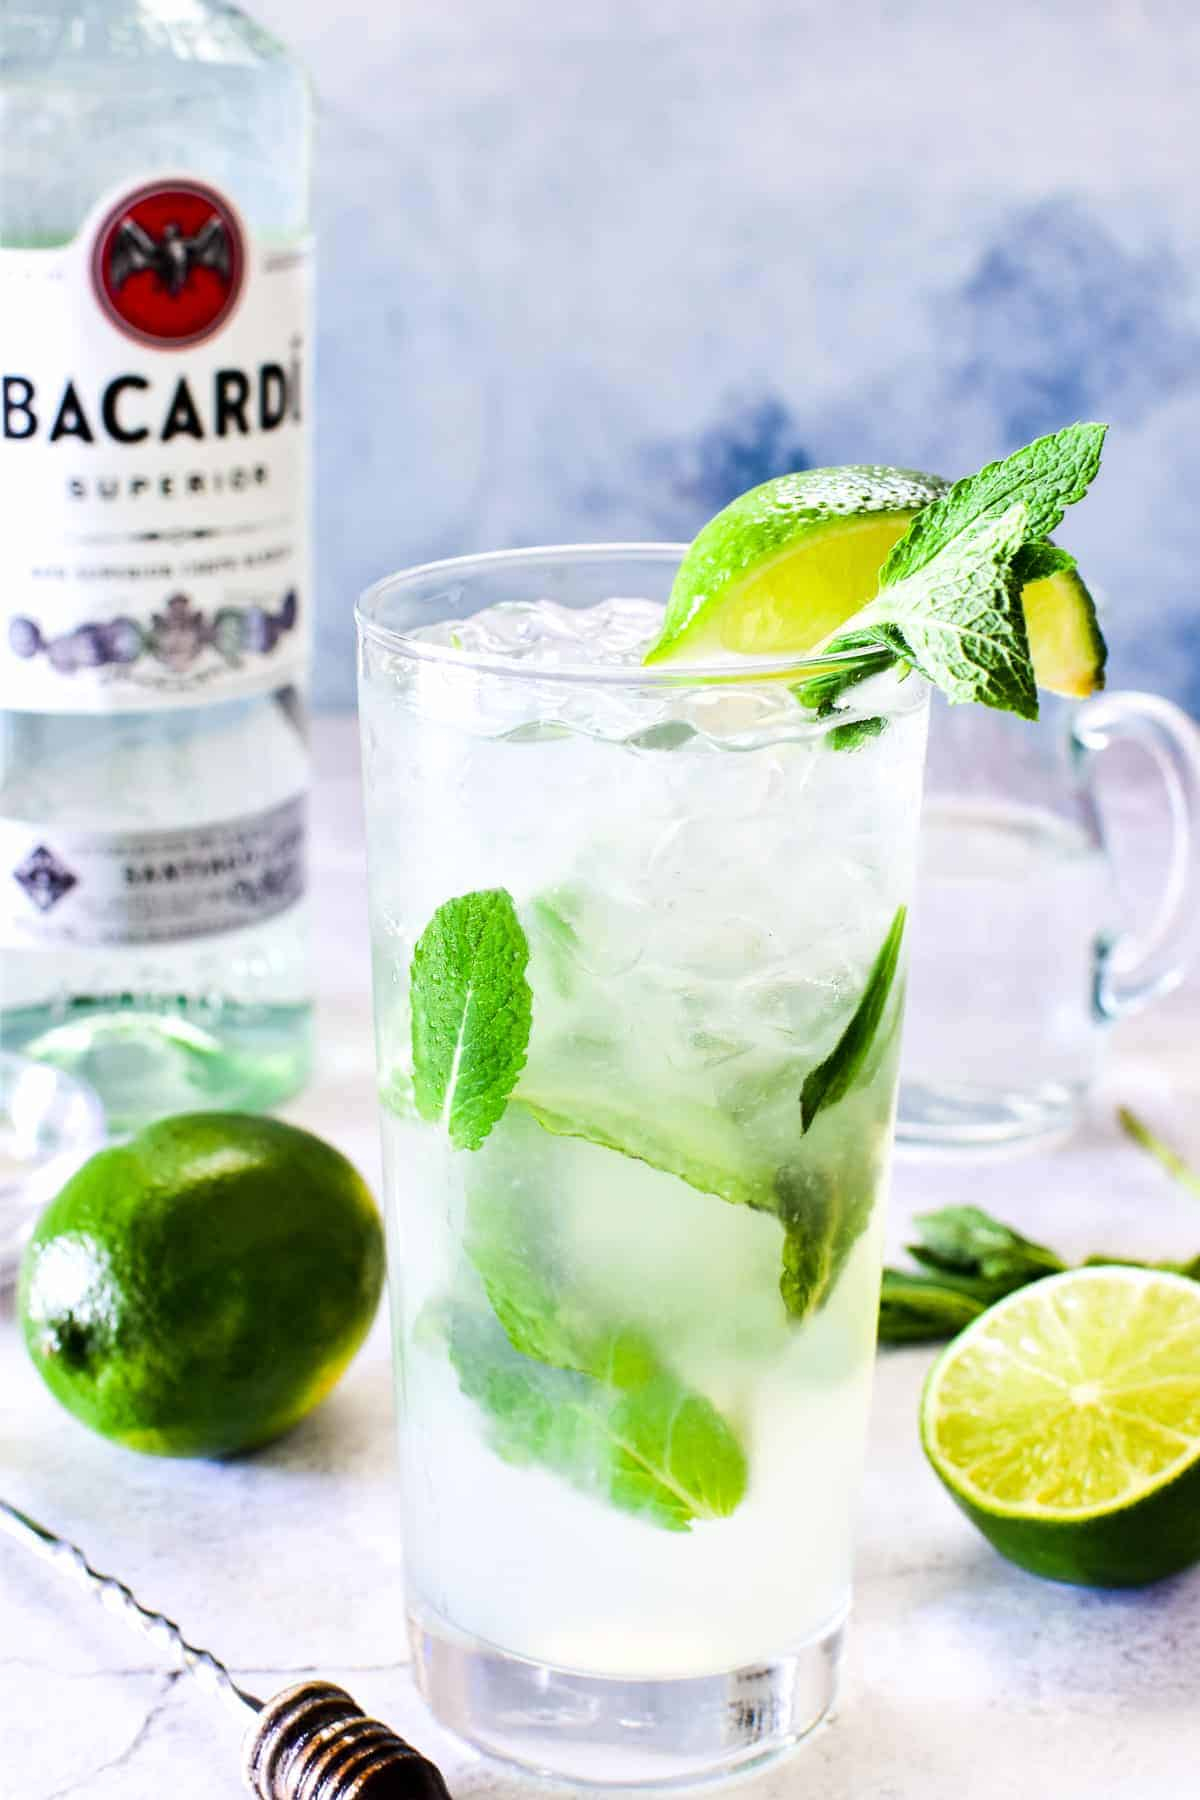 Mojito in glass with bottle of Bacardi